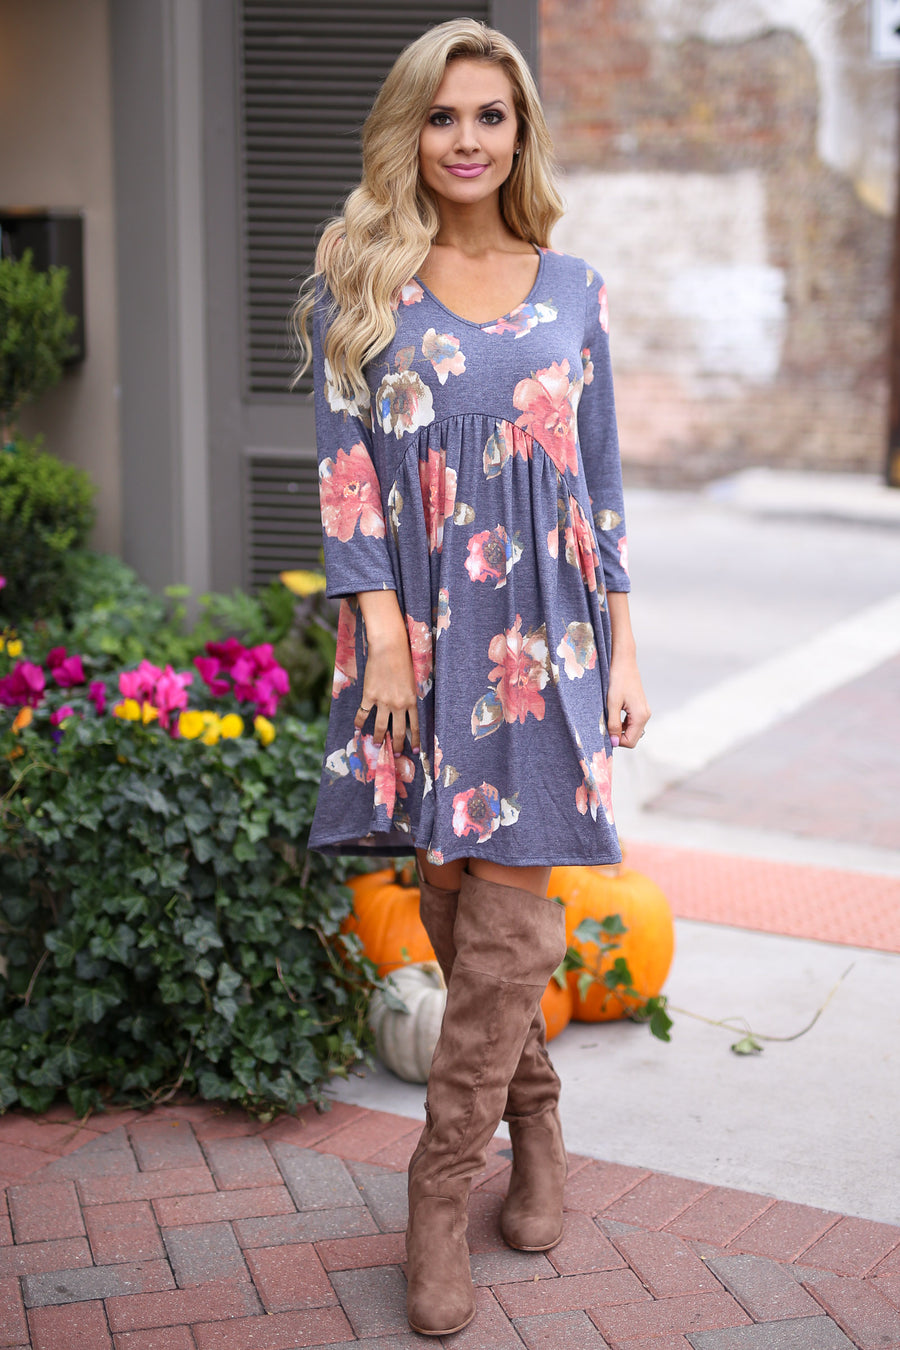 Good Ole' Days Dress - Navy floral print flowy dress, side, Closet Candy Boutique